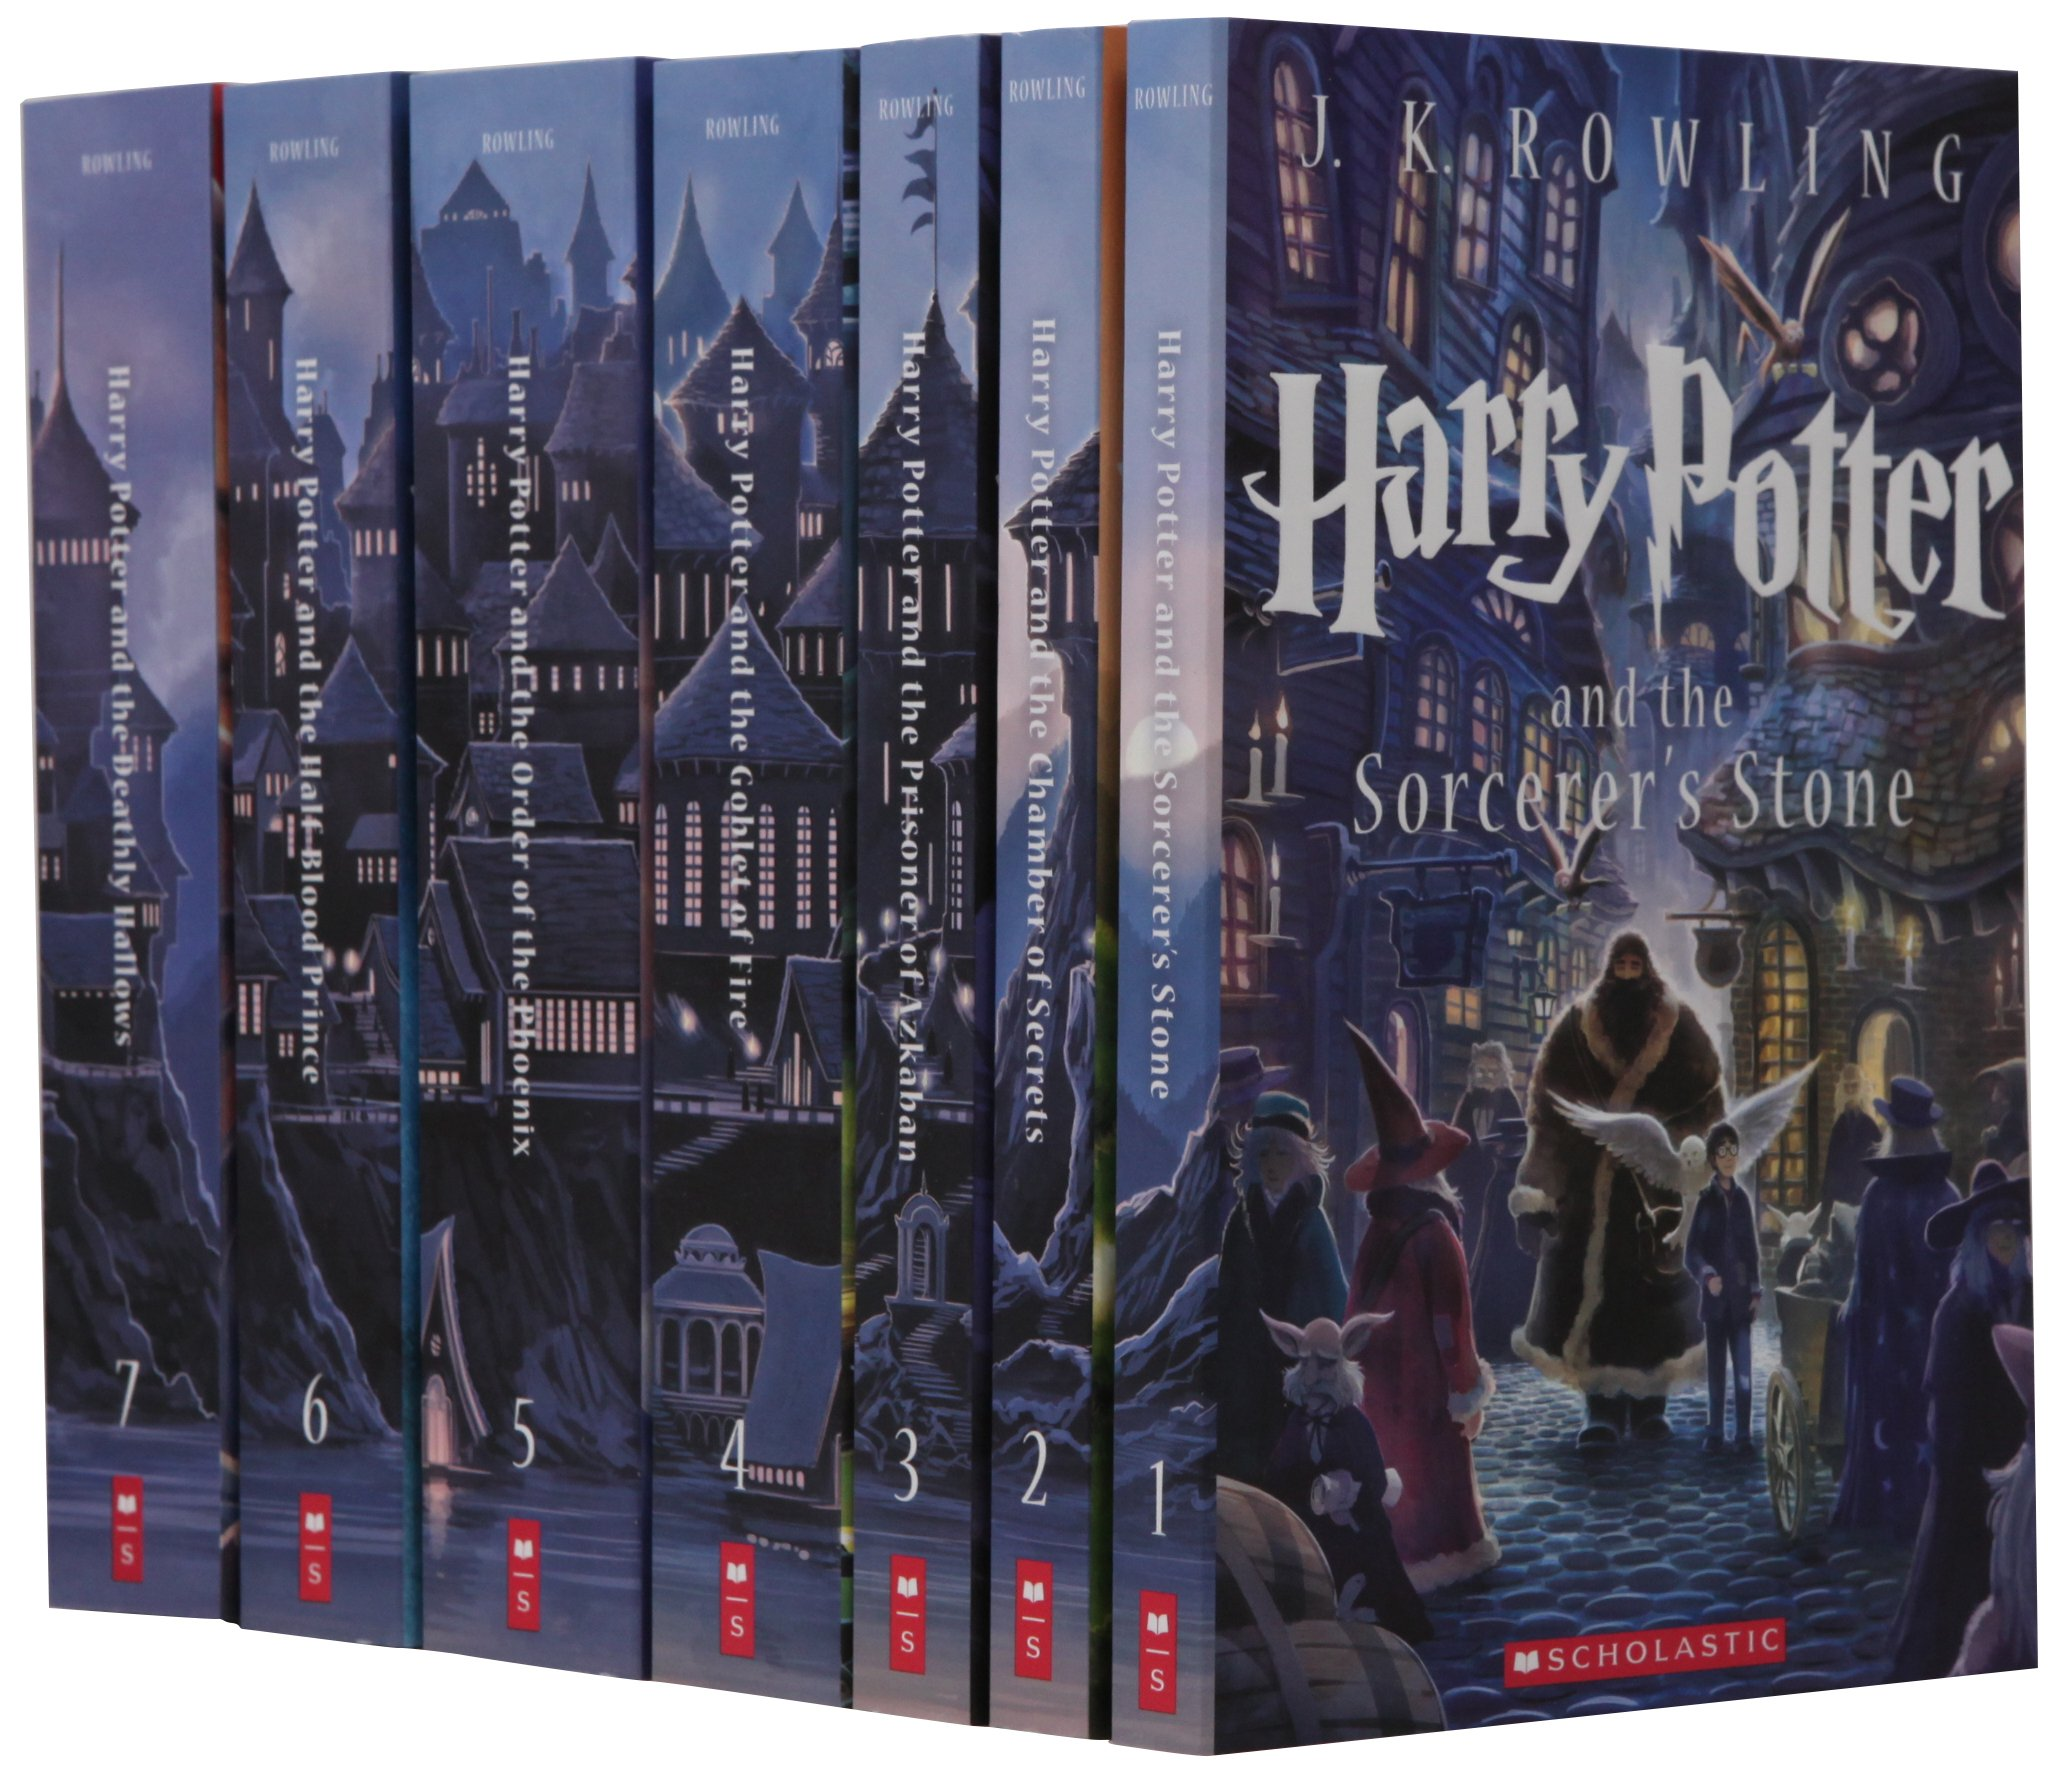 Harry Potter Complete Book Series Special Edition Boxed Set by Kazu Kibuishi   Harry Potter gift ideas   cool Harry Potter gift ideas   magical Harry Potter gift ideas   cute Harry Potter gift ideas   what to gift a harry potter fan   what is the best gift for a harry potter fan   the ultimate harry potter gift   the best harry potter gift ideas   harry potter gift for girl   harry potter gift for teacher   harry potter gift for kids   harry potter gift to buy   harry potter gift for adults   harry potter gift for him   harry potter gift for her   harry potter gift for boyfriend   harry potter gift for girlfriend   harry potter gift amazon   harry potter anniversary gift   harry potter gift bag ideas   harry potter gift box ideas   harry potter gift guide   harry potter official gift shop   harry potter gift set   Harry Potter gift guide   the best harry potter gift ideas   what to get someone who loves harry potter   harry potter hufflepuff gift ideas   harry potter Gryffindor gift ideas   harry potter Ravenclaw gift ideas   harry potter Slytherin gift ideas   harry potter graduation gift ideas   good harry potter gift ideas   great harry potter gift ideas   harry potter baby shower gift ideas   harry potter themed wedding gift ideas   unique harry potter gift ideas   harry potter valentines gift ideas   potterhead gift ideas   best potterhead gifts   cool potterhead gift ideas   Harry Potter gifts for men   Harry Potter gift box   Harry Potter gifts uk   harry potter gifts for tweens   harry potter gift basket   harry potter gift set   Harry Potter stocking stuffers   Harry Potter Christmas gifts   fantastic beasts gift guide